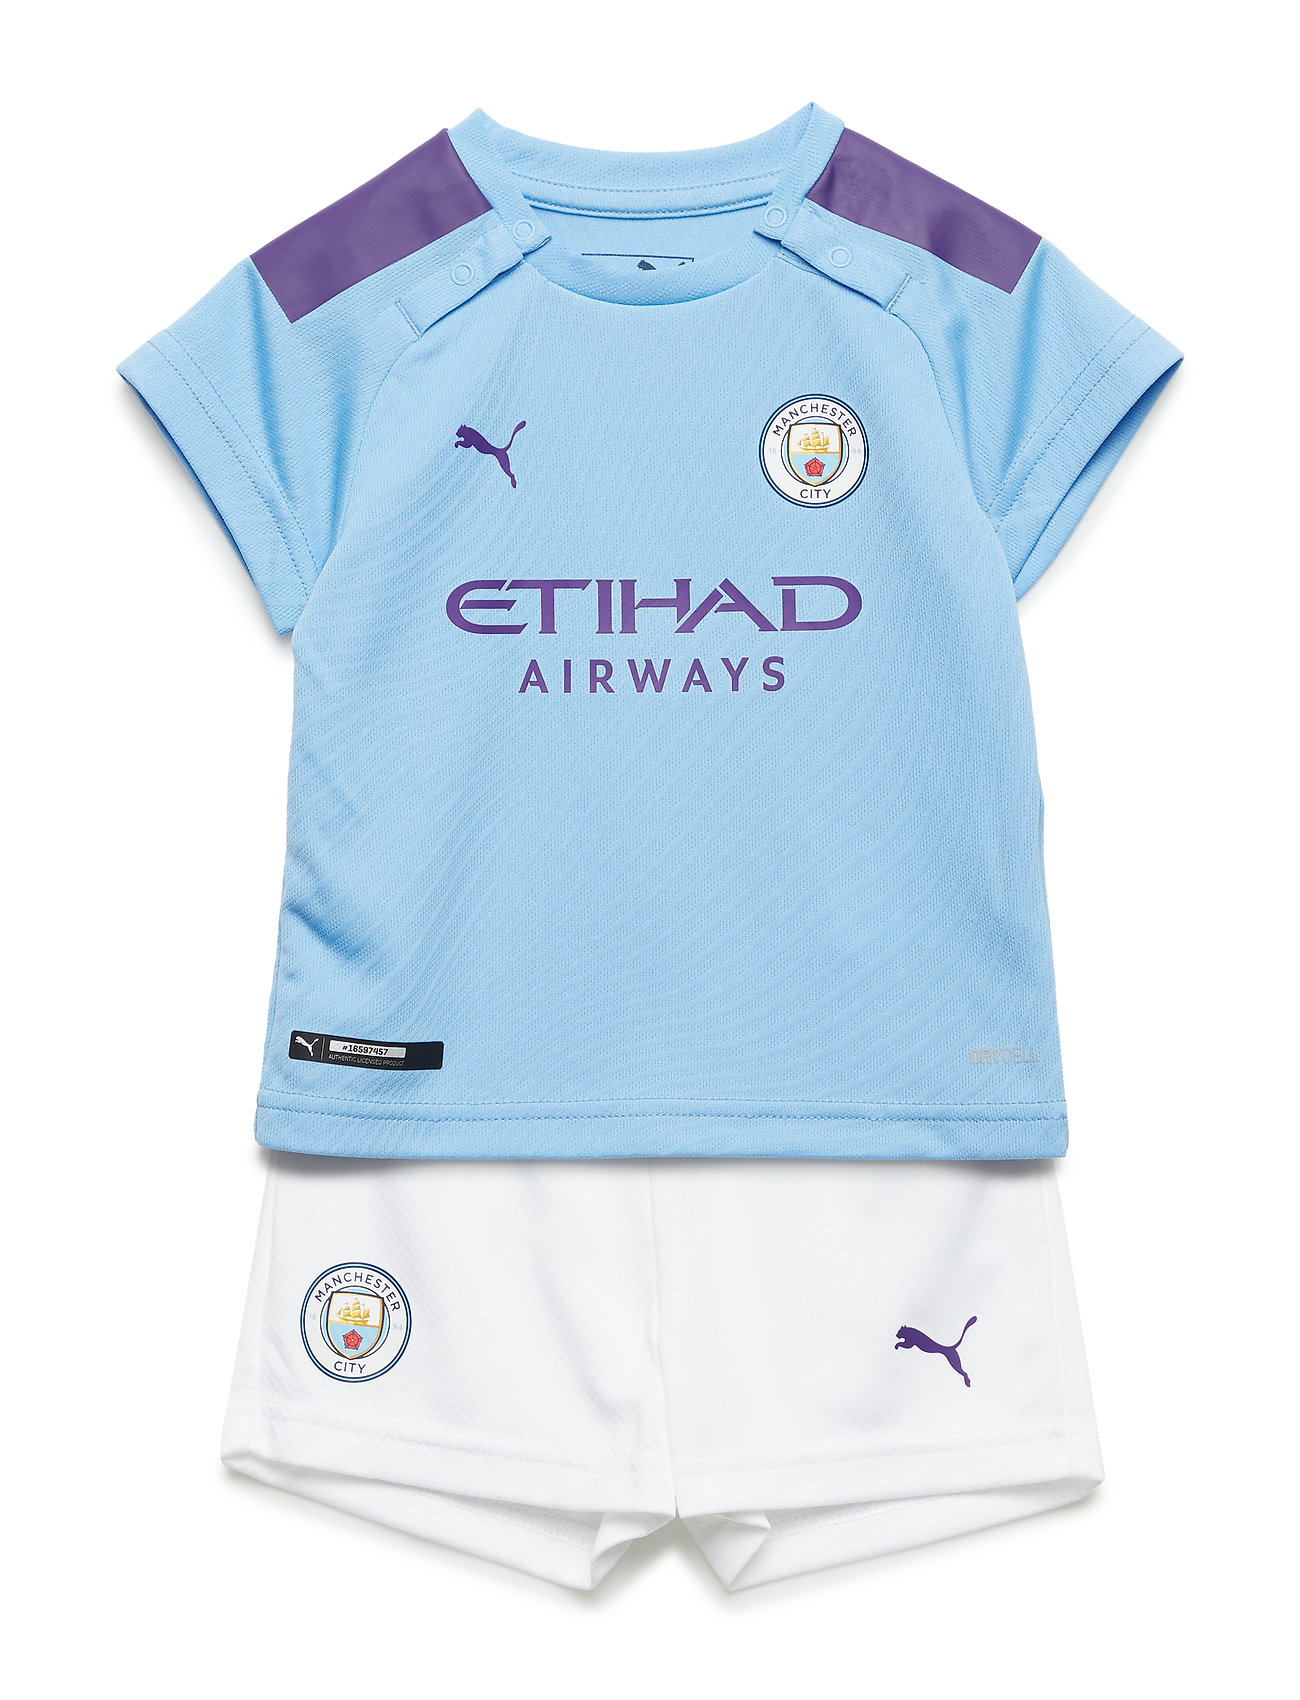 PUMA MCFC HOME BABY-Kit with Sponsor Logo, SOCKS & HANGER - TEAM LIGHT BLUE-TILLANDSIA PURPLE